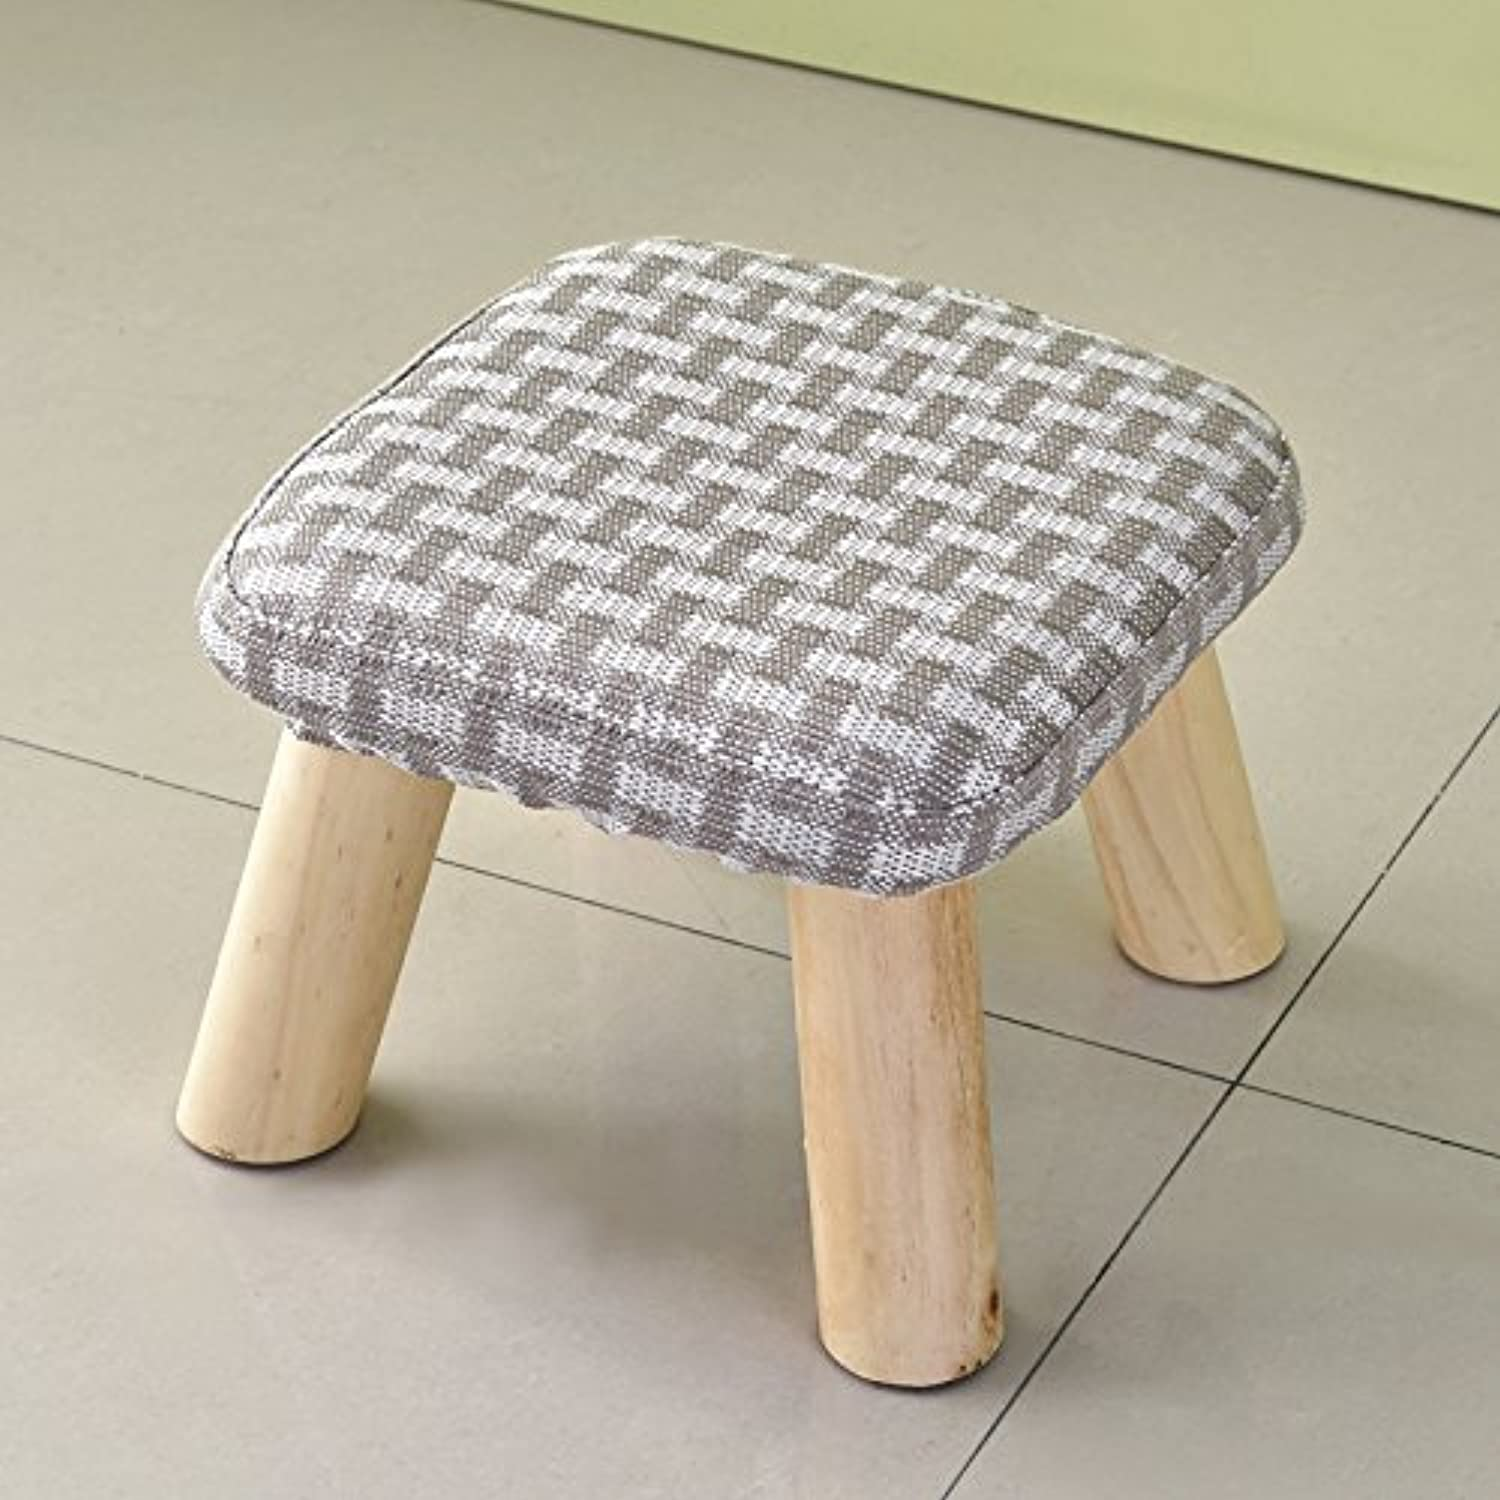 Dana Carrie Stool Round stool Solid Wood Contemporary Party Chair Cloth Sofas stools Chairs Home Tea a Couple of Adult Low stools, Wooden Benches to Implementation